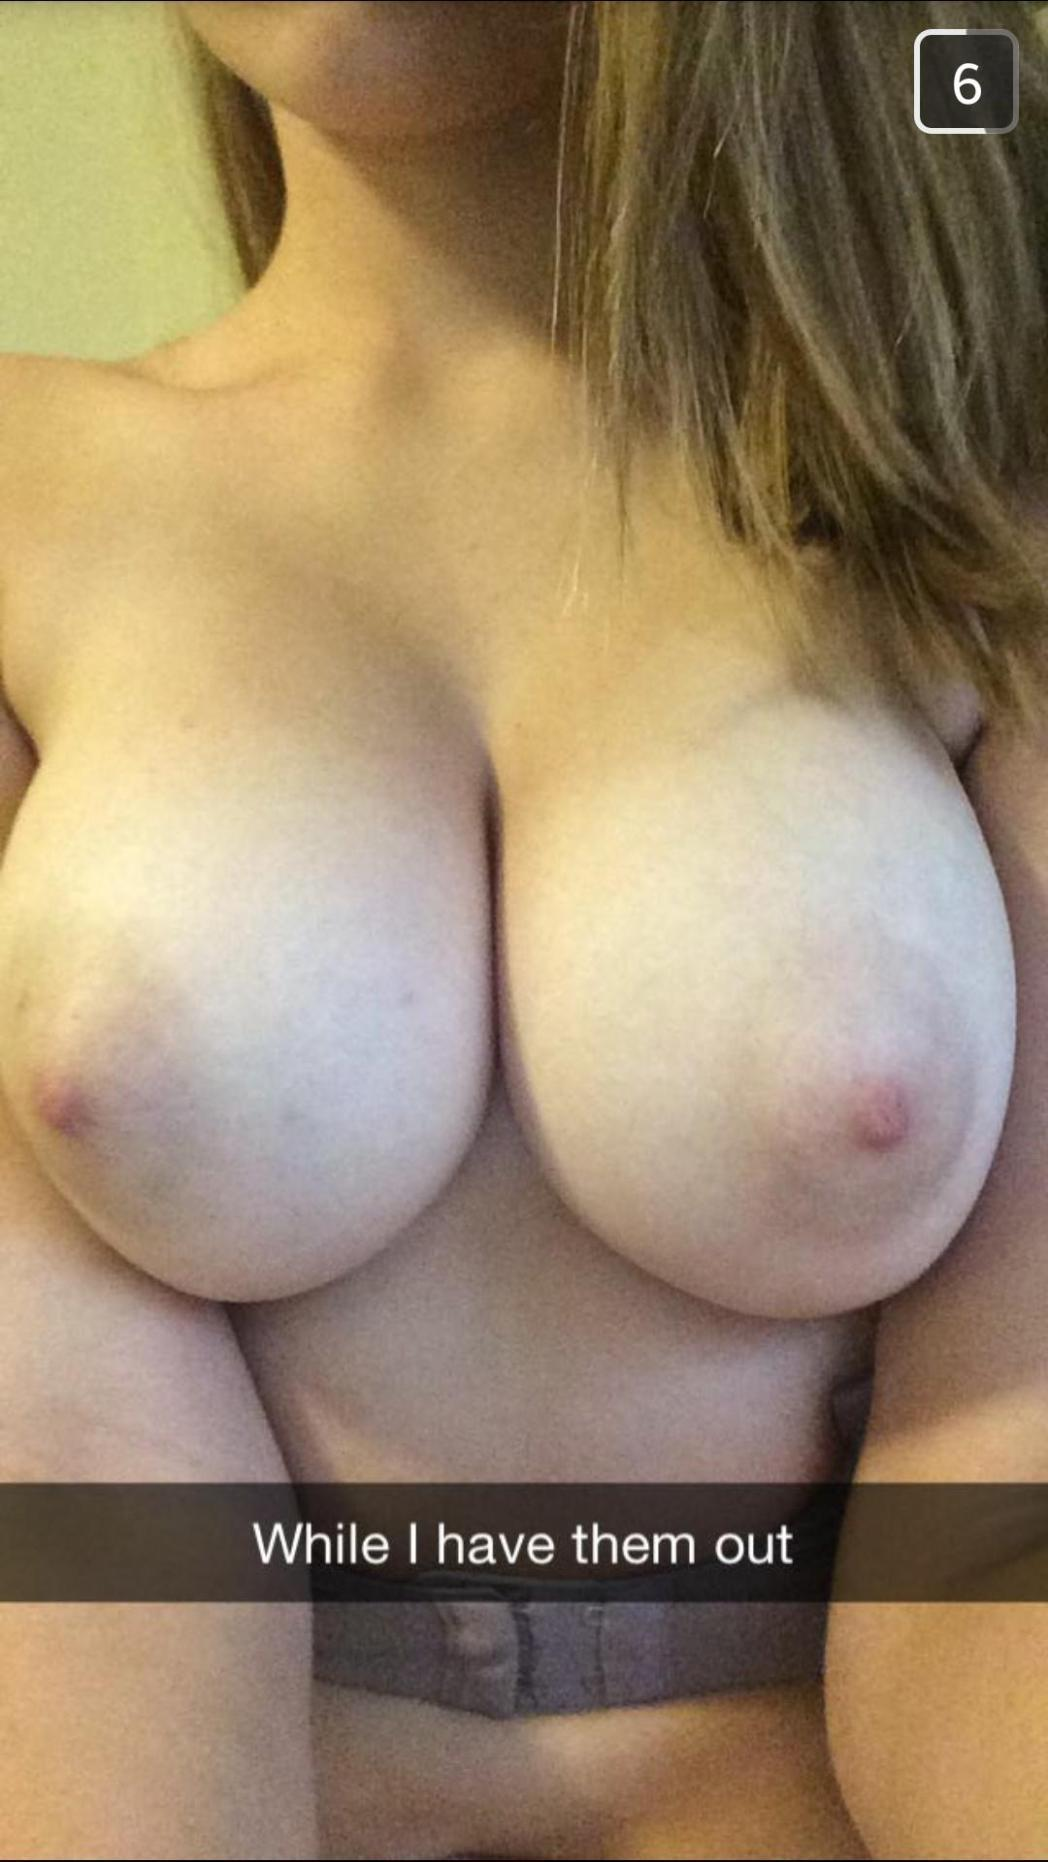 hawaii girl dildos her pussy free asian porn